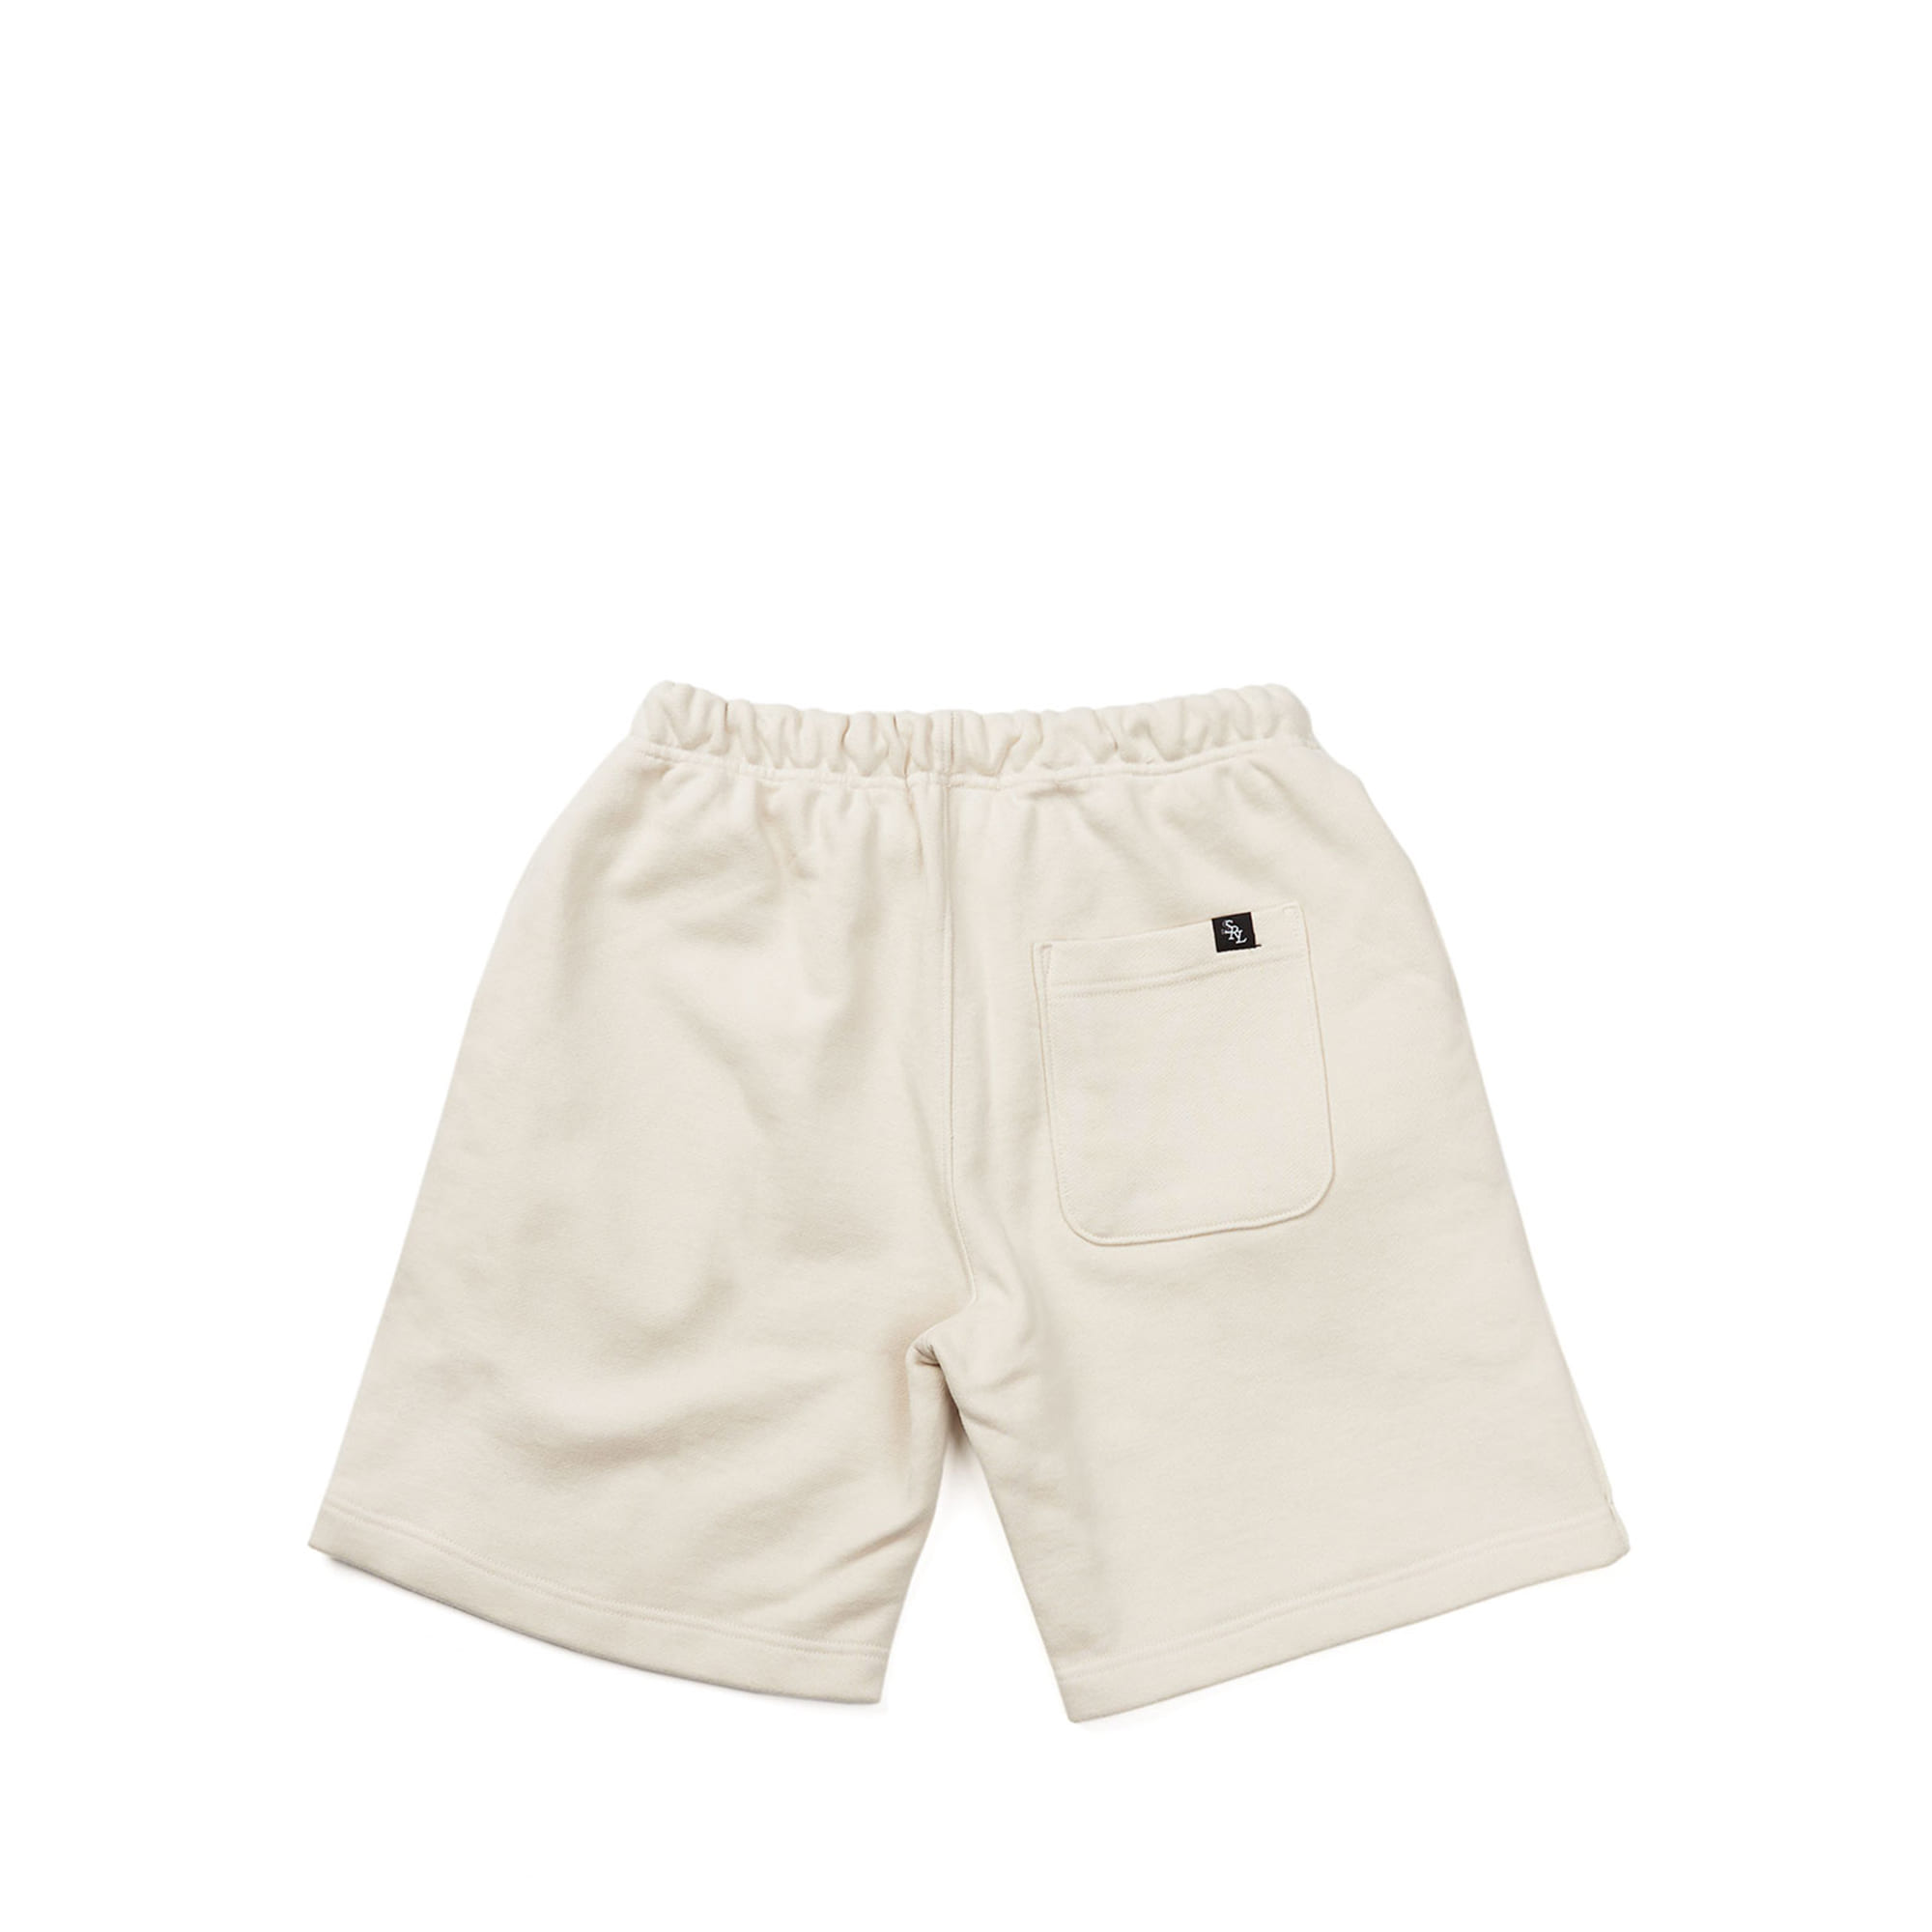 line sweat shorts / cream